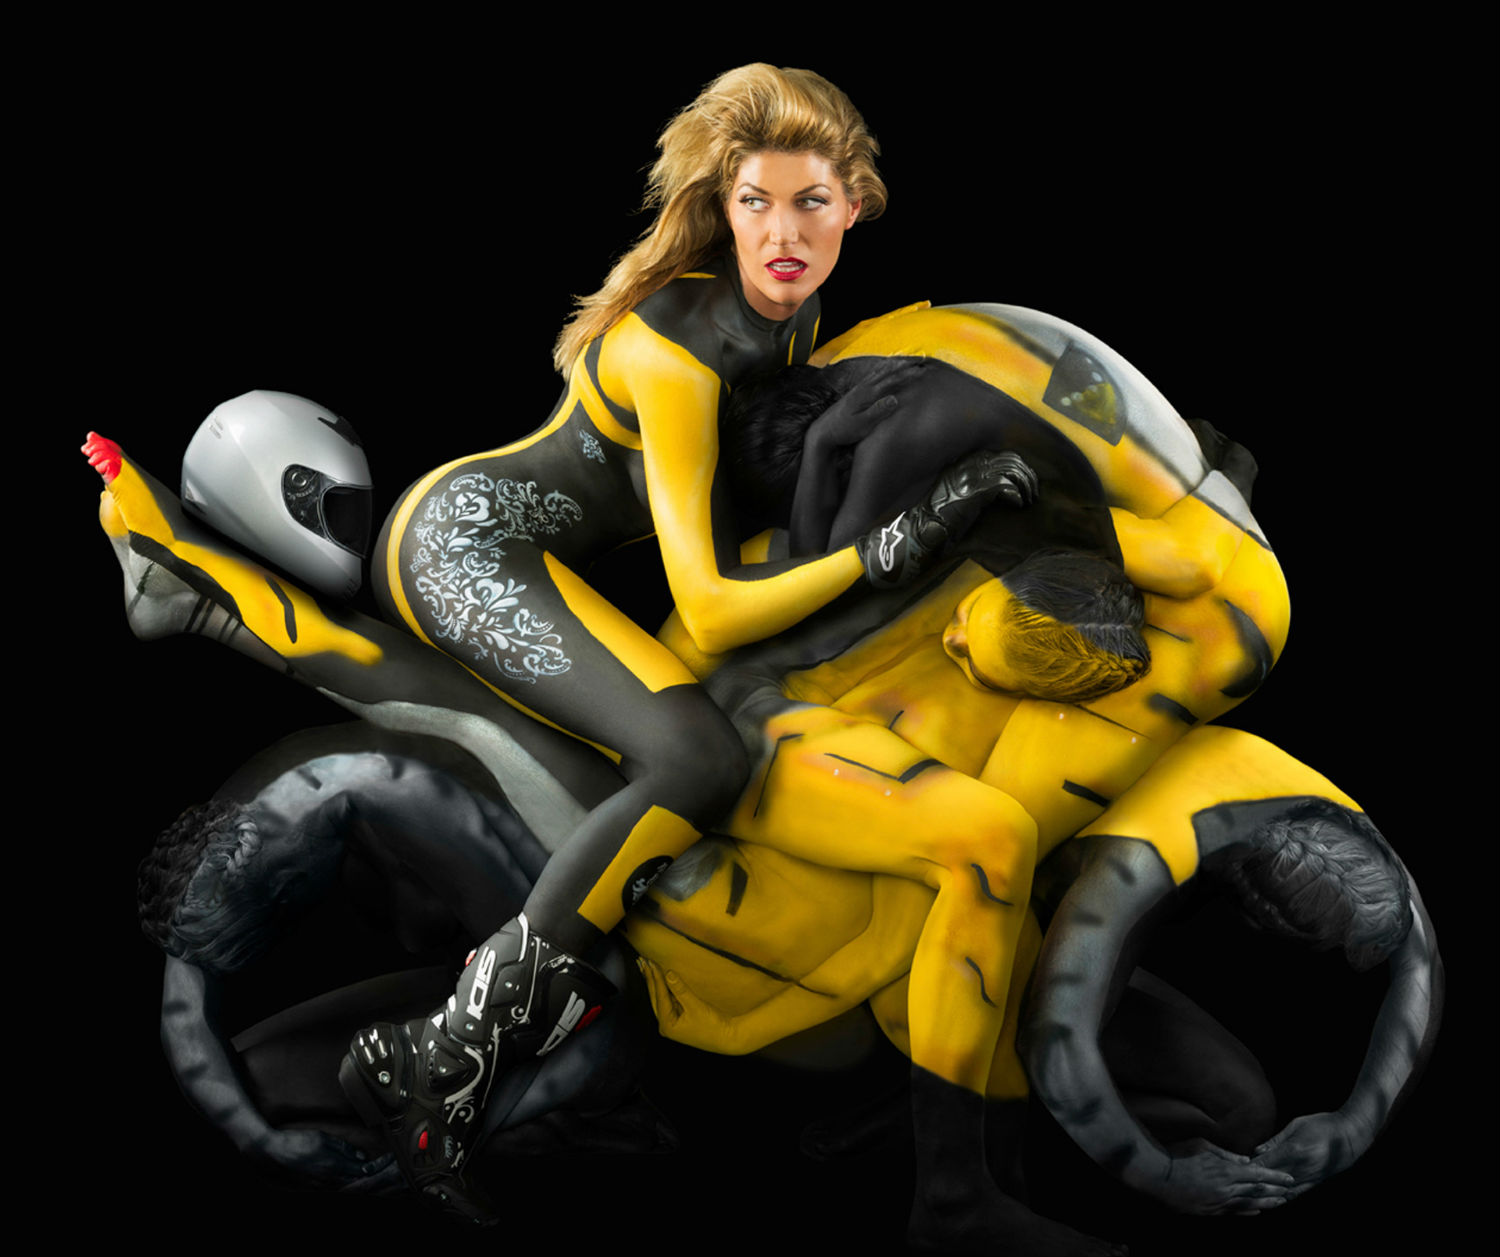 Trina Merry: A Human Motorcycle in Body Paint